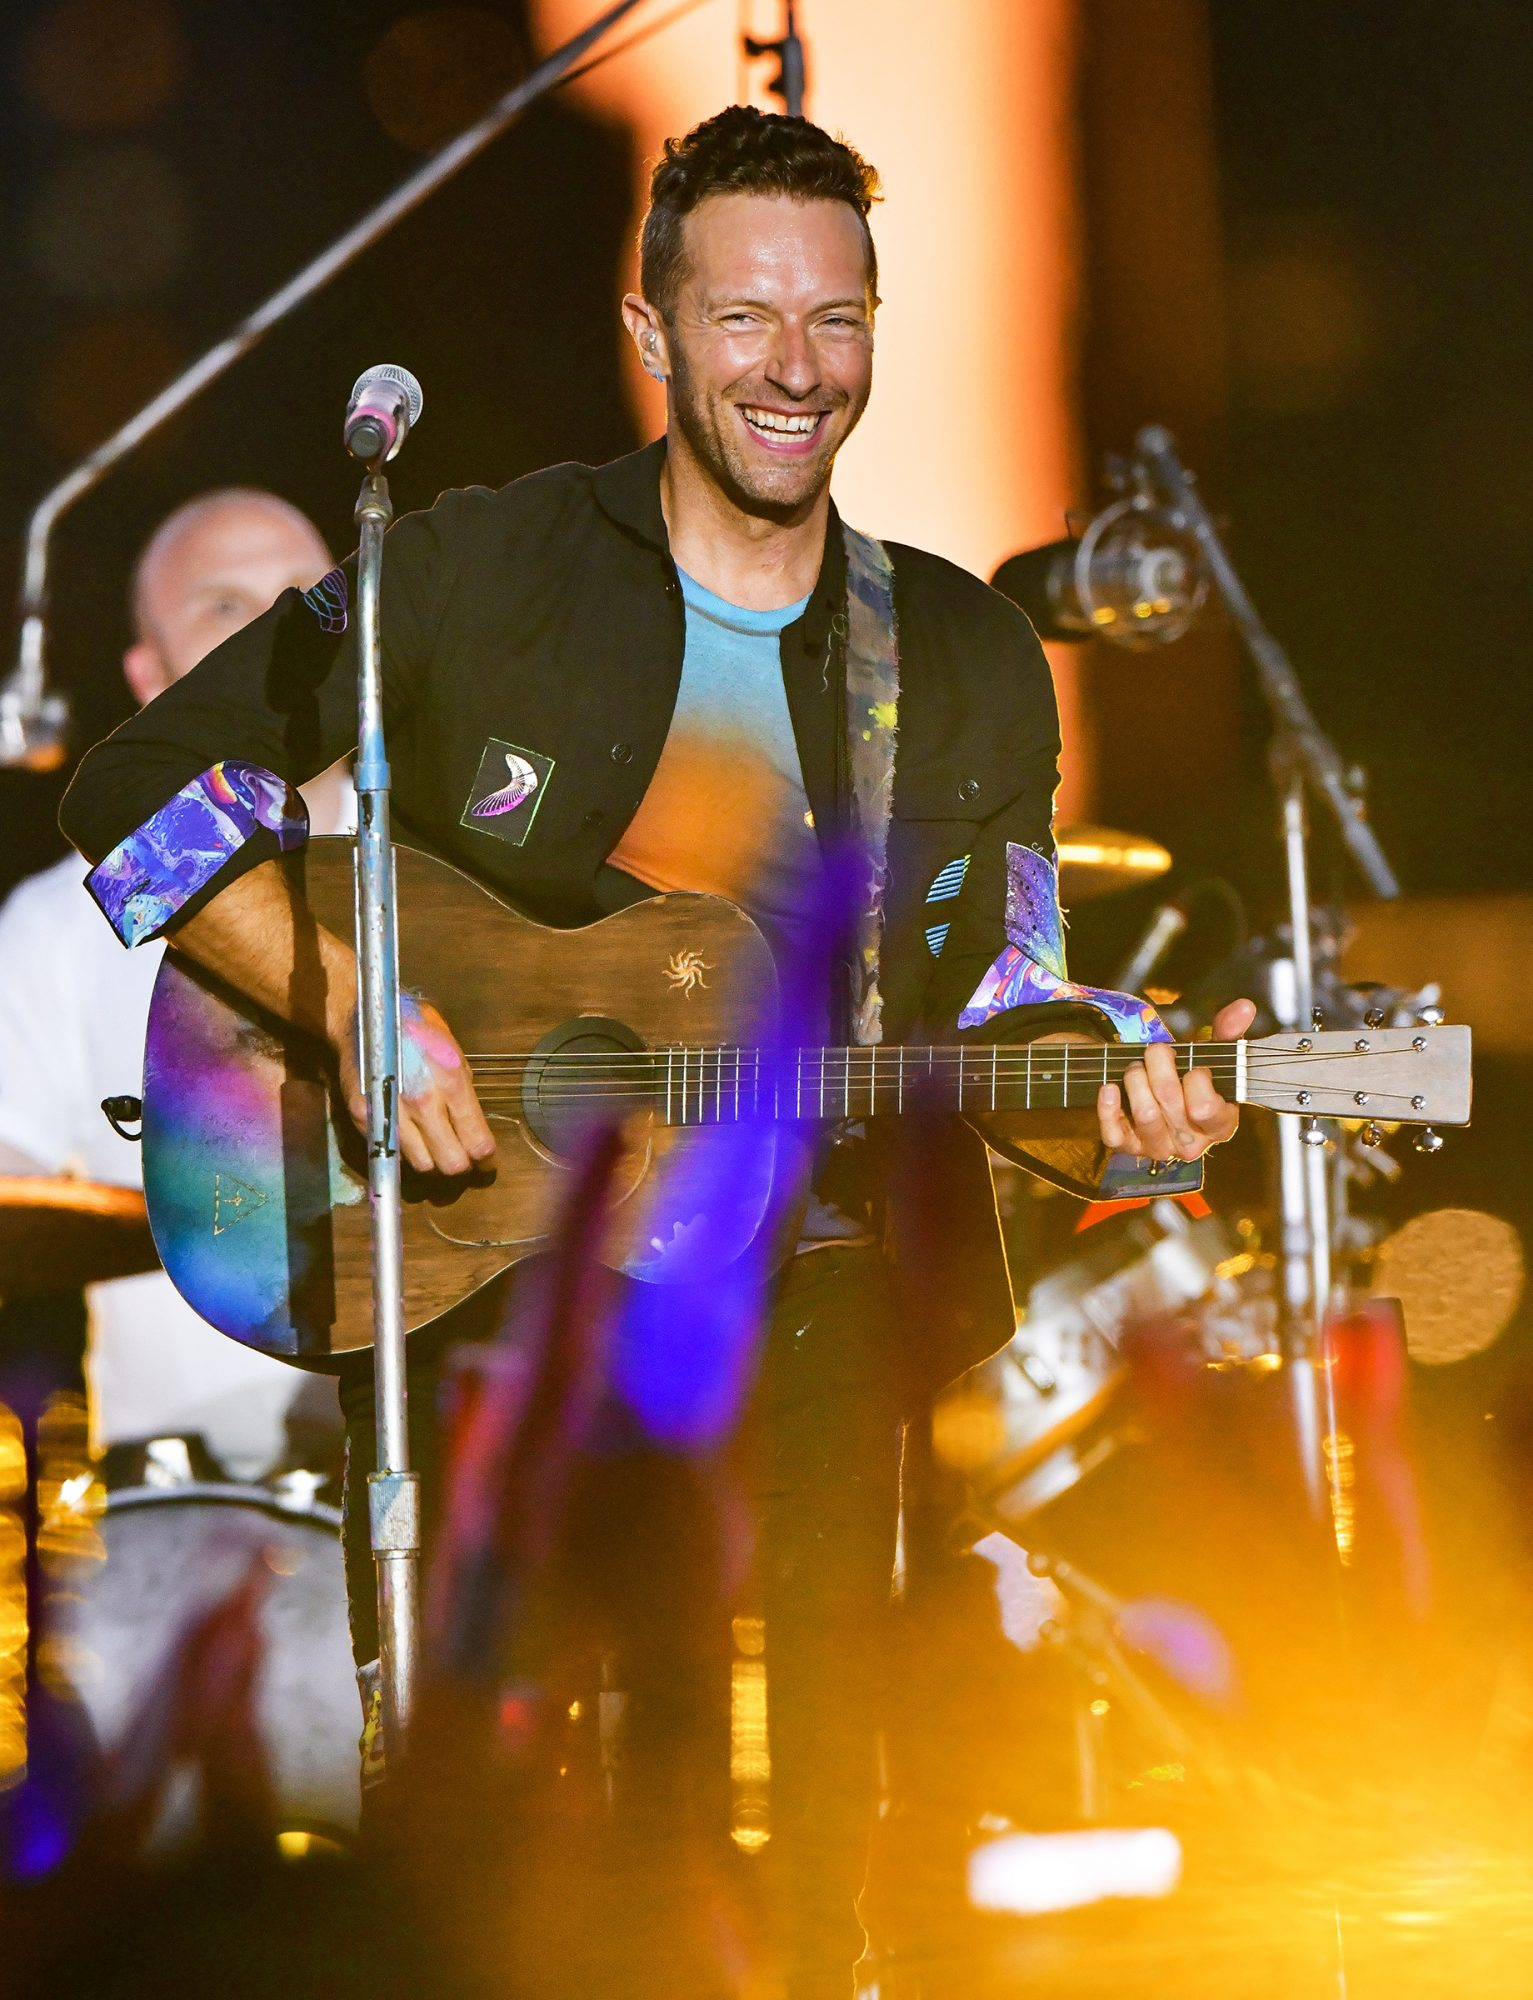 Chris Martin of Coldplay performs during pre-taping of the Macy's 4th of July Firework Show at Hunter's Point South Park on June 17, 2021 in New York City